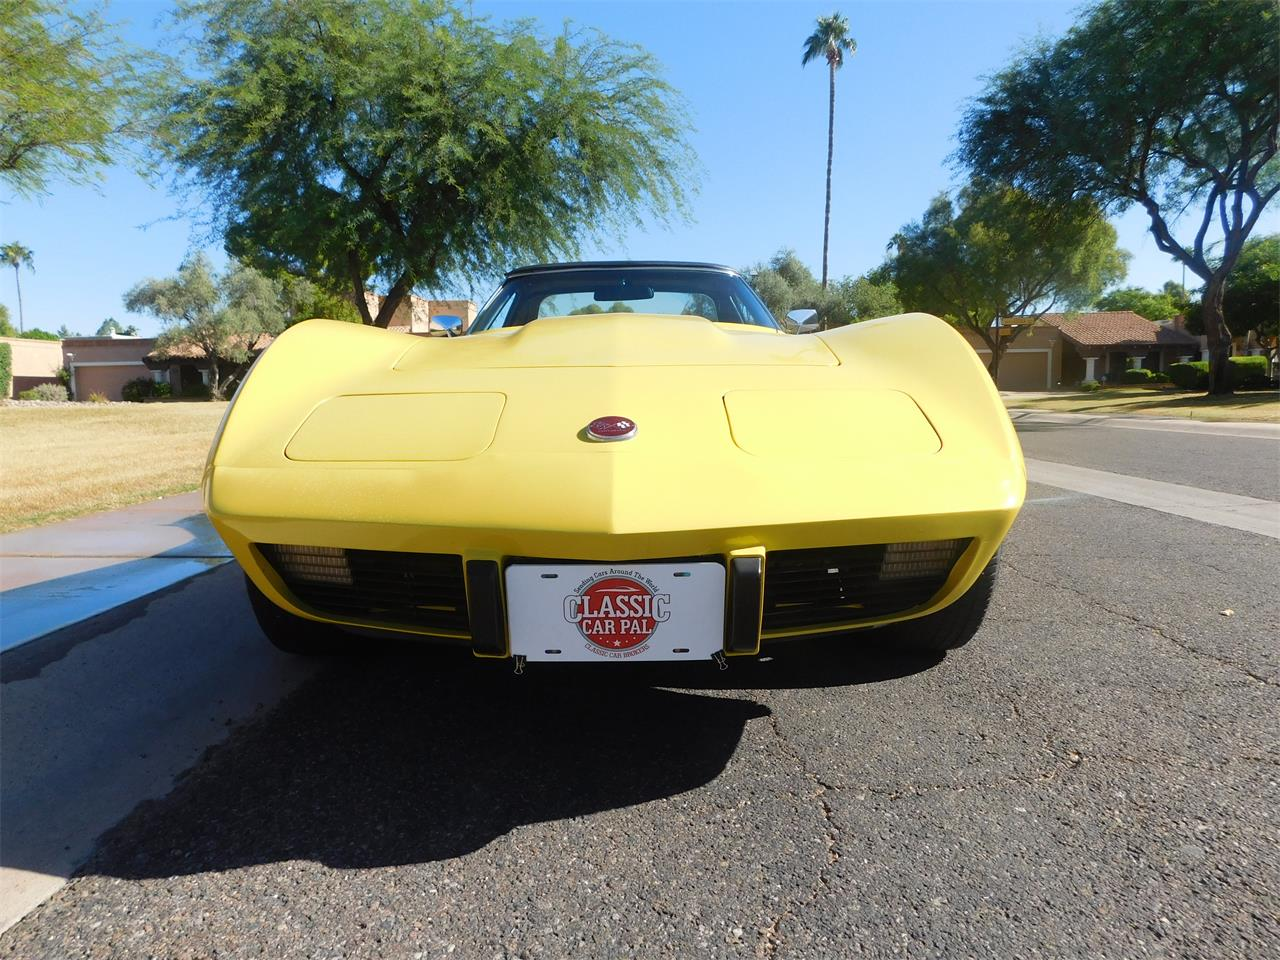 Large Picture of 1975 Chevrolet Corvette Offered by Classic Car Pal - M81R